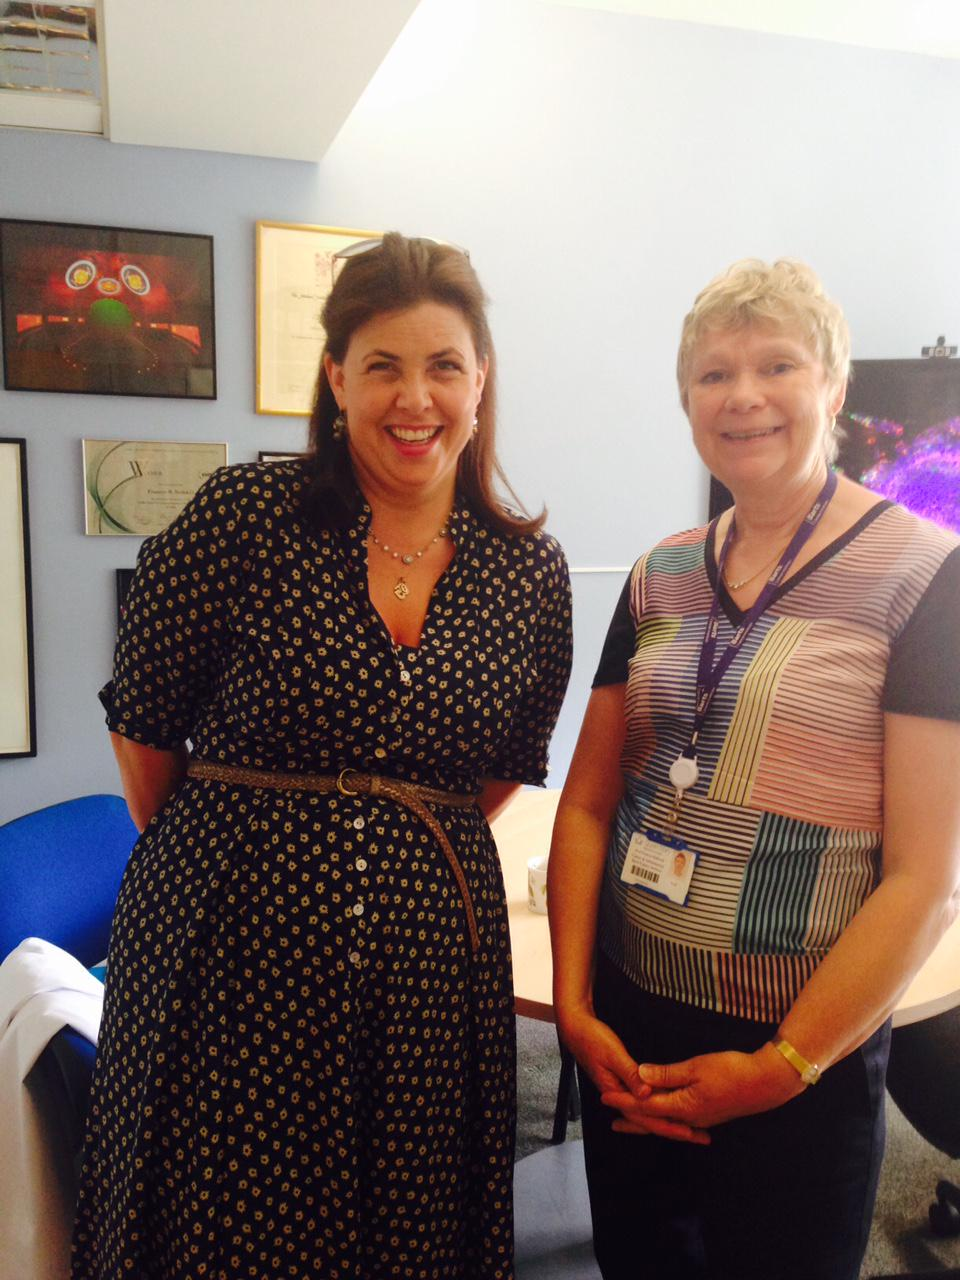 RT @CentreoftheCell: Our Director @FrancesBalkwill met with @KirstieMAllsopp today - that's our Pod in the photo in the background! http://…